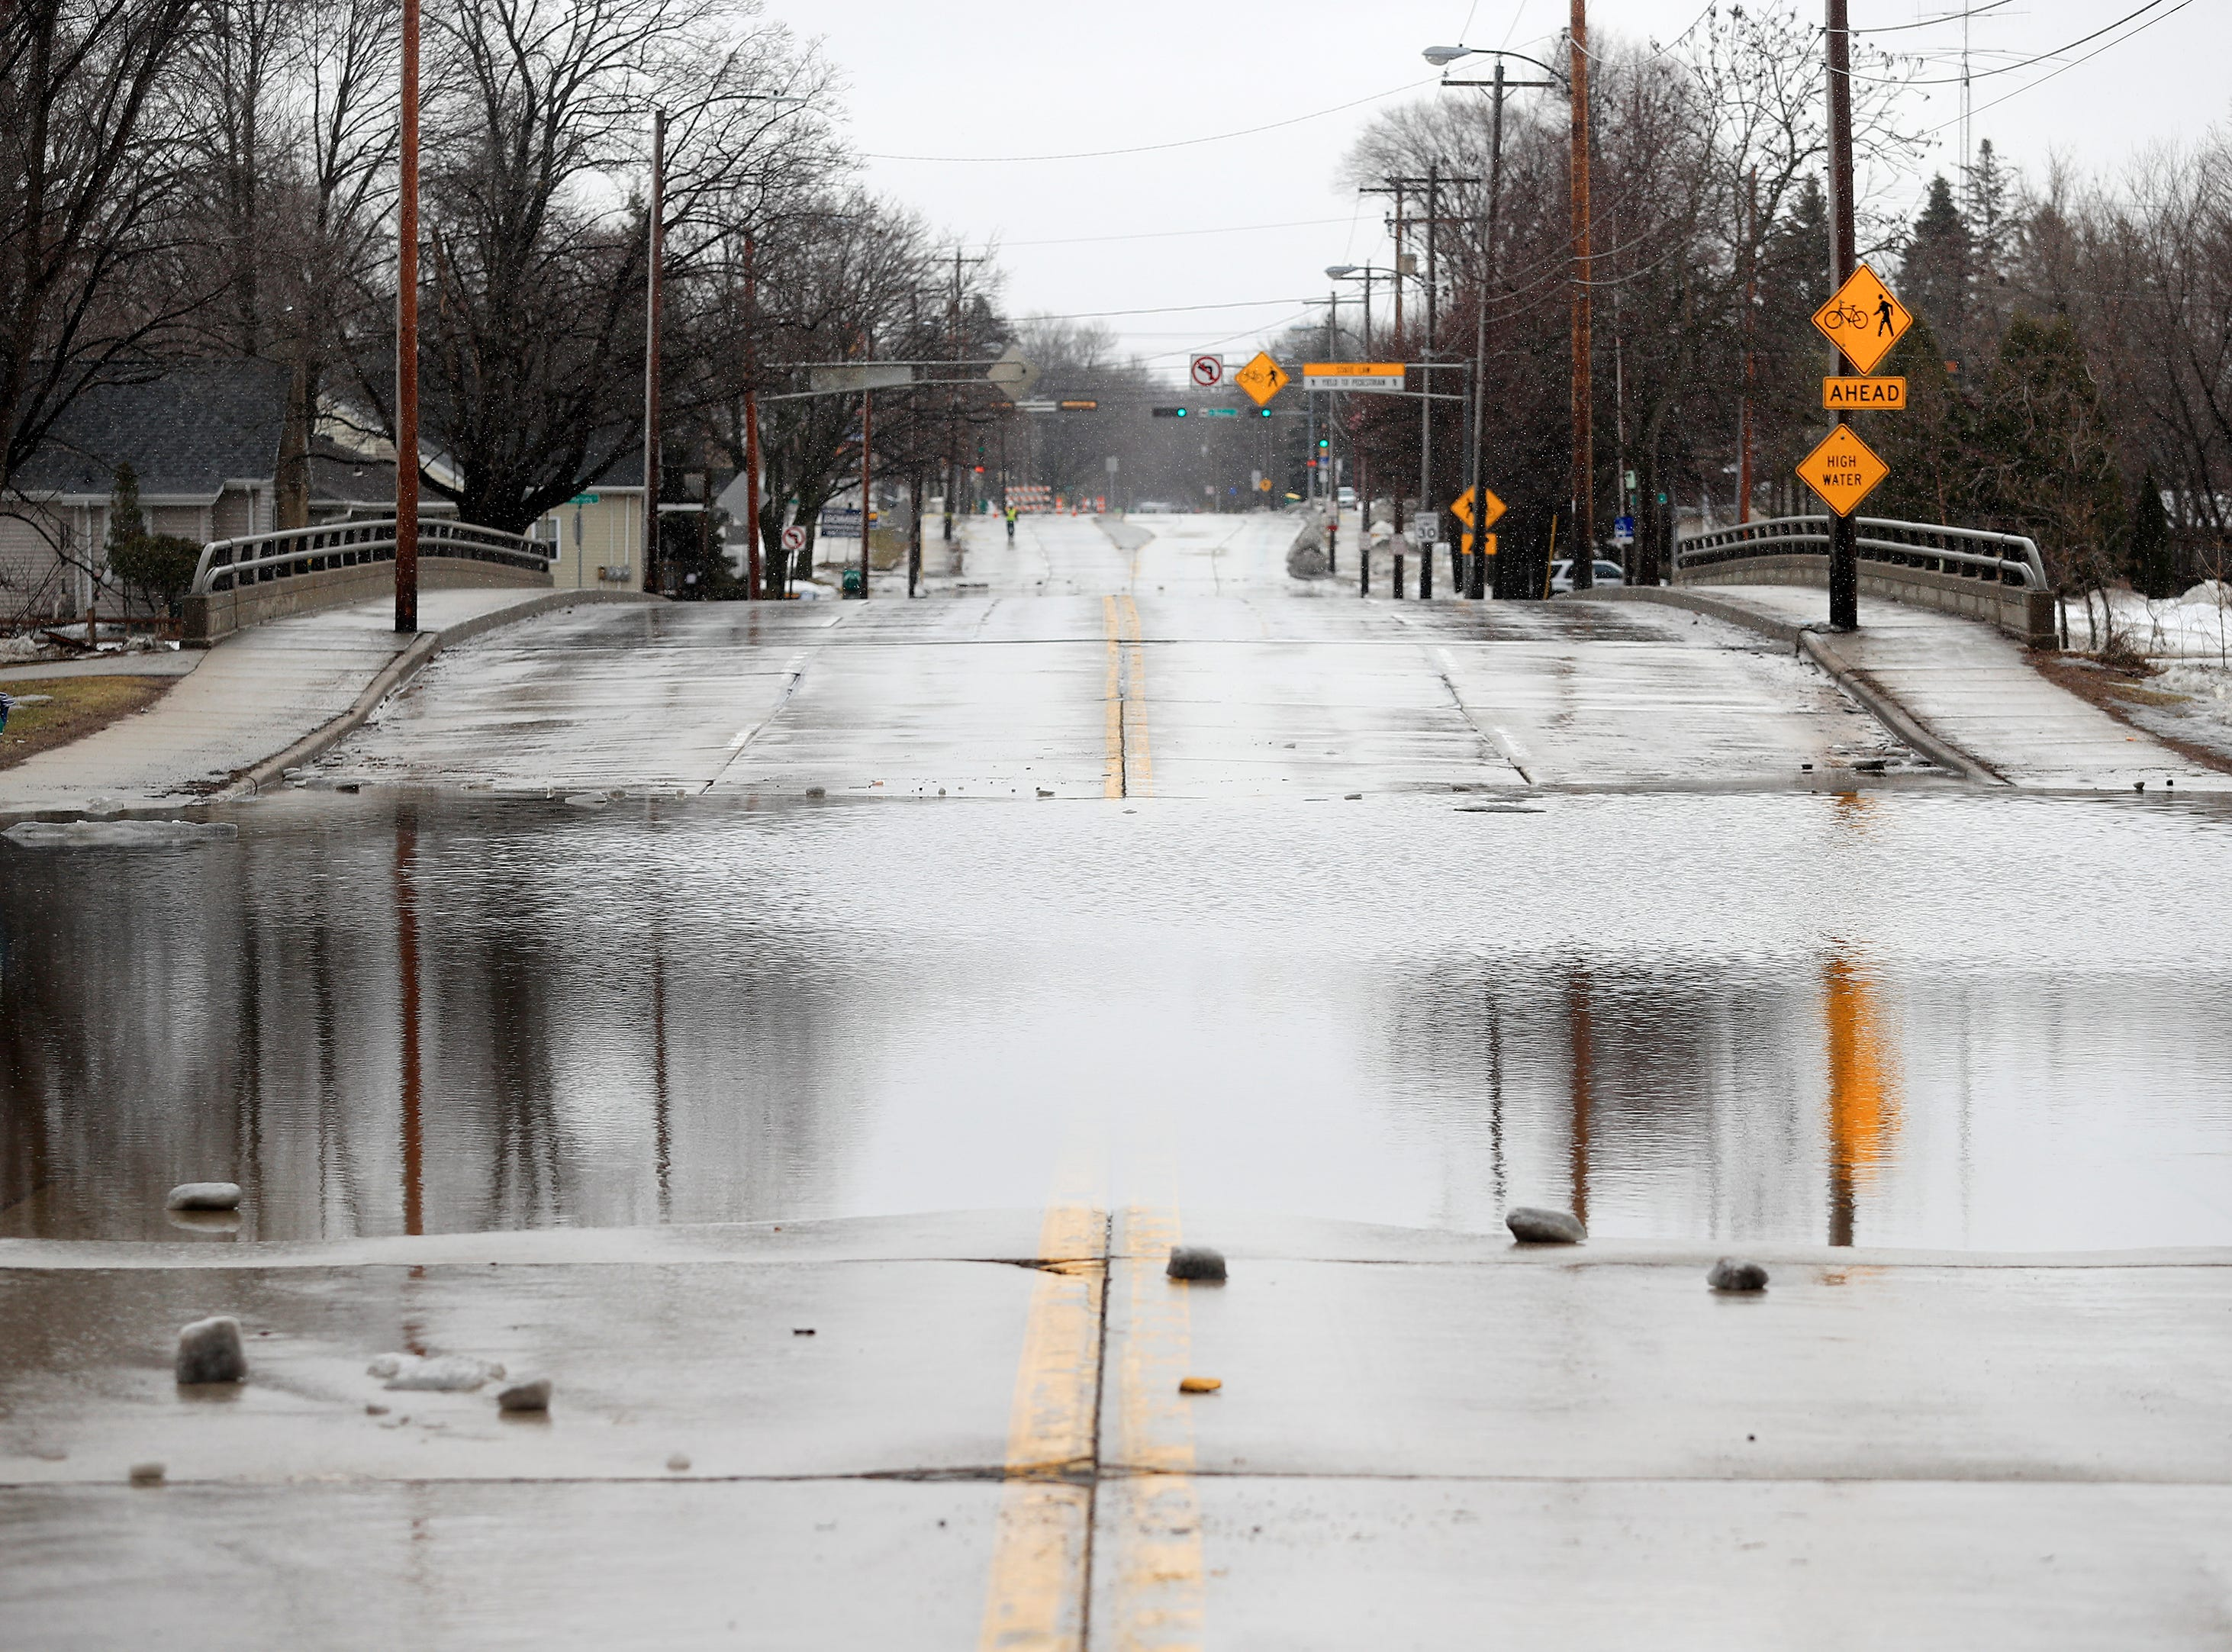 Mason Street is closed due to flooding by the East river on Friday, March 15, 2019 in Green Bay, Wis.